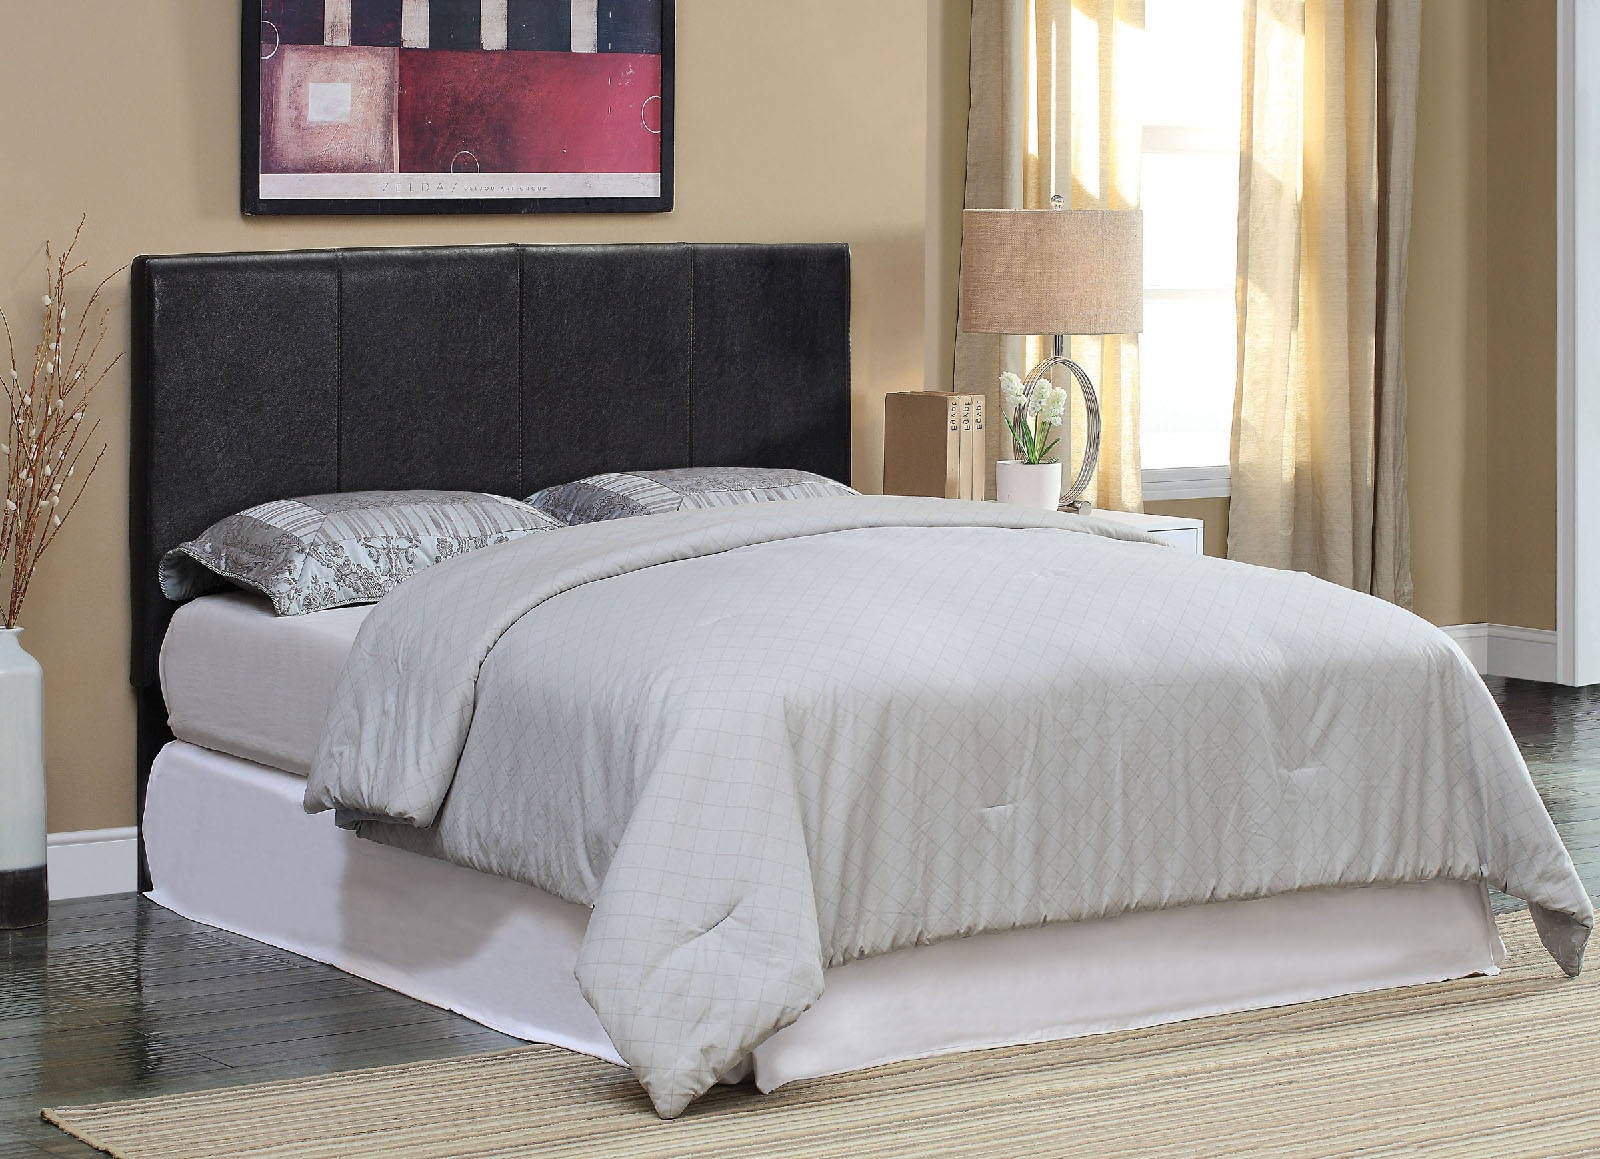 276740440a9 Furniture of America Winn Park II Black King Headboard with Bed Frame Click  To Enlarge ...